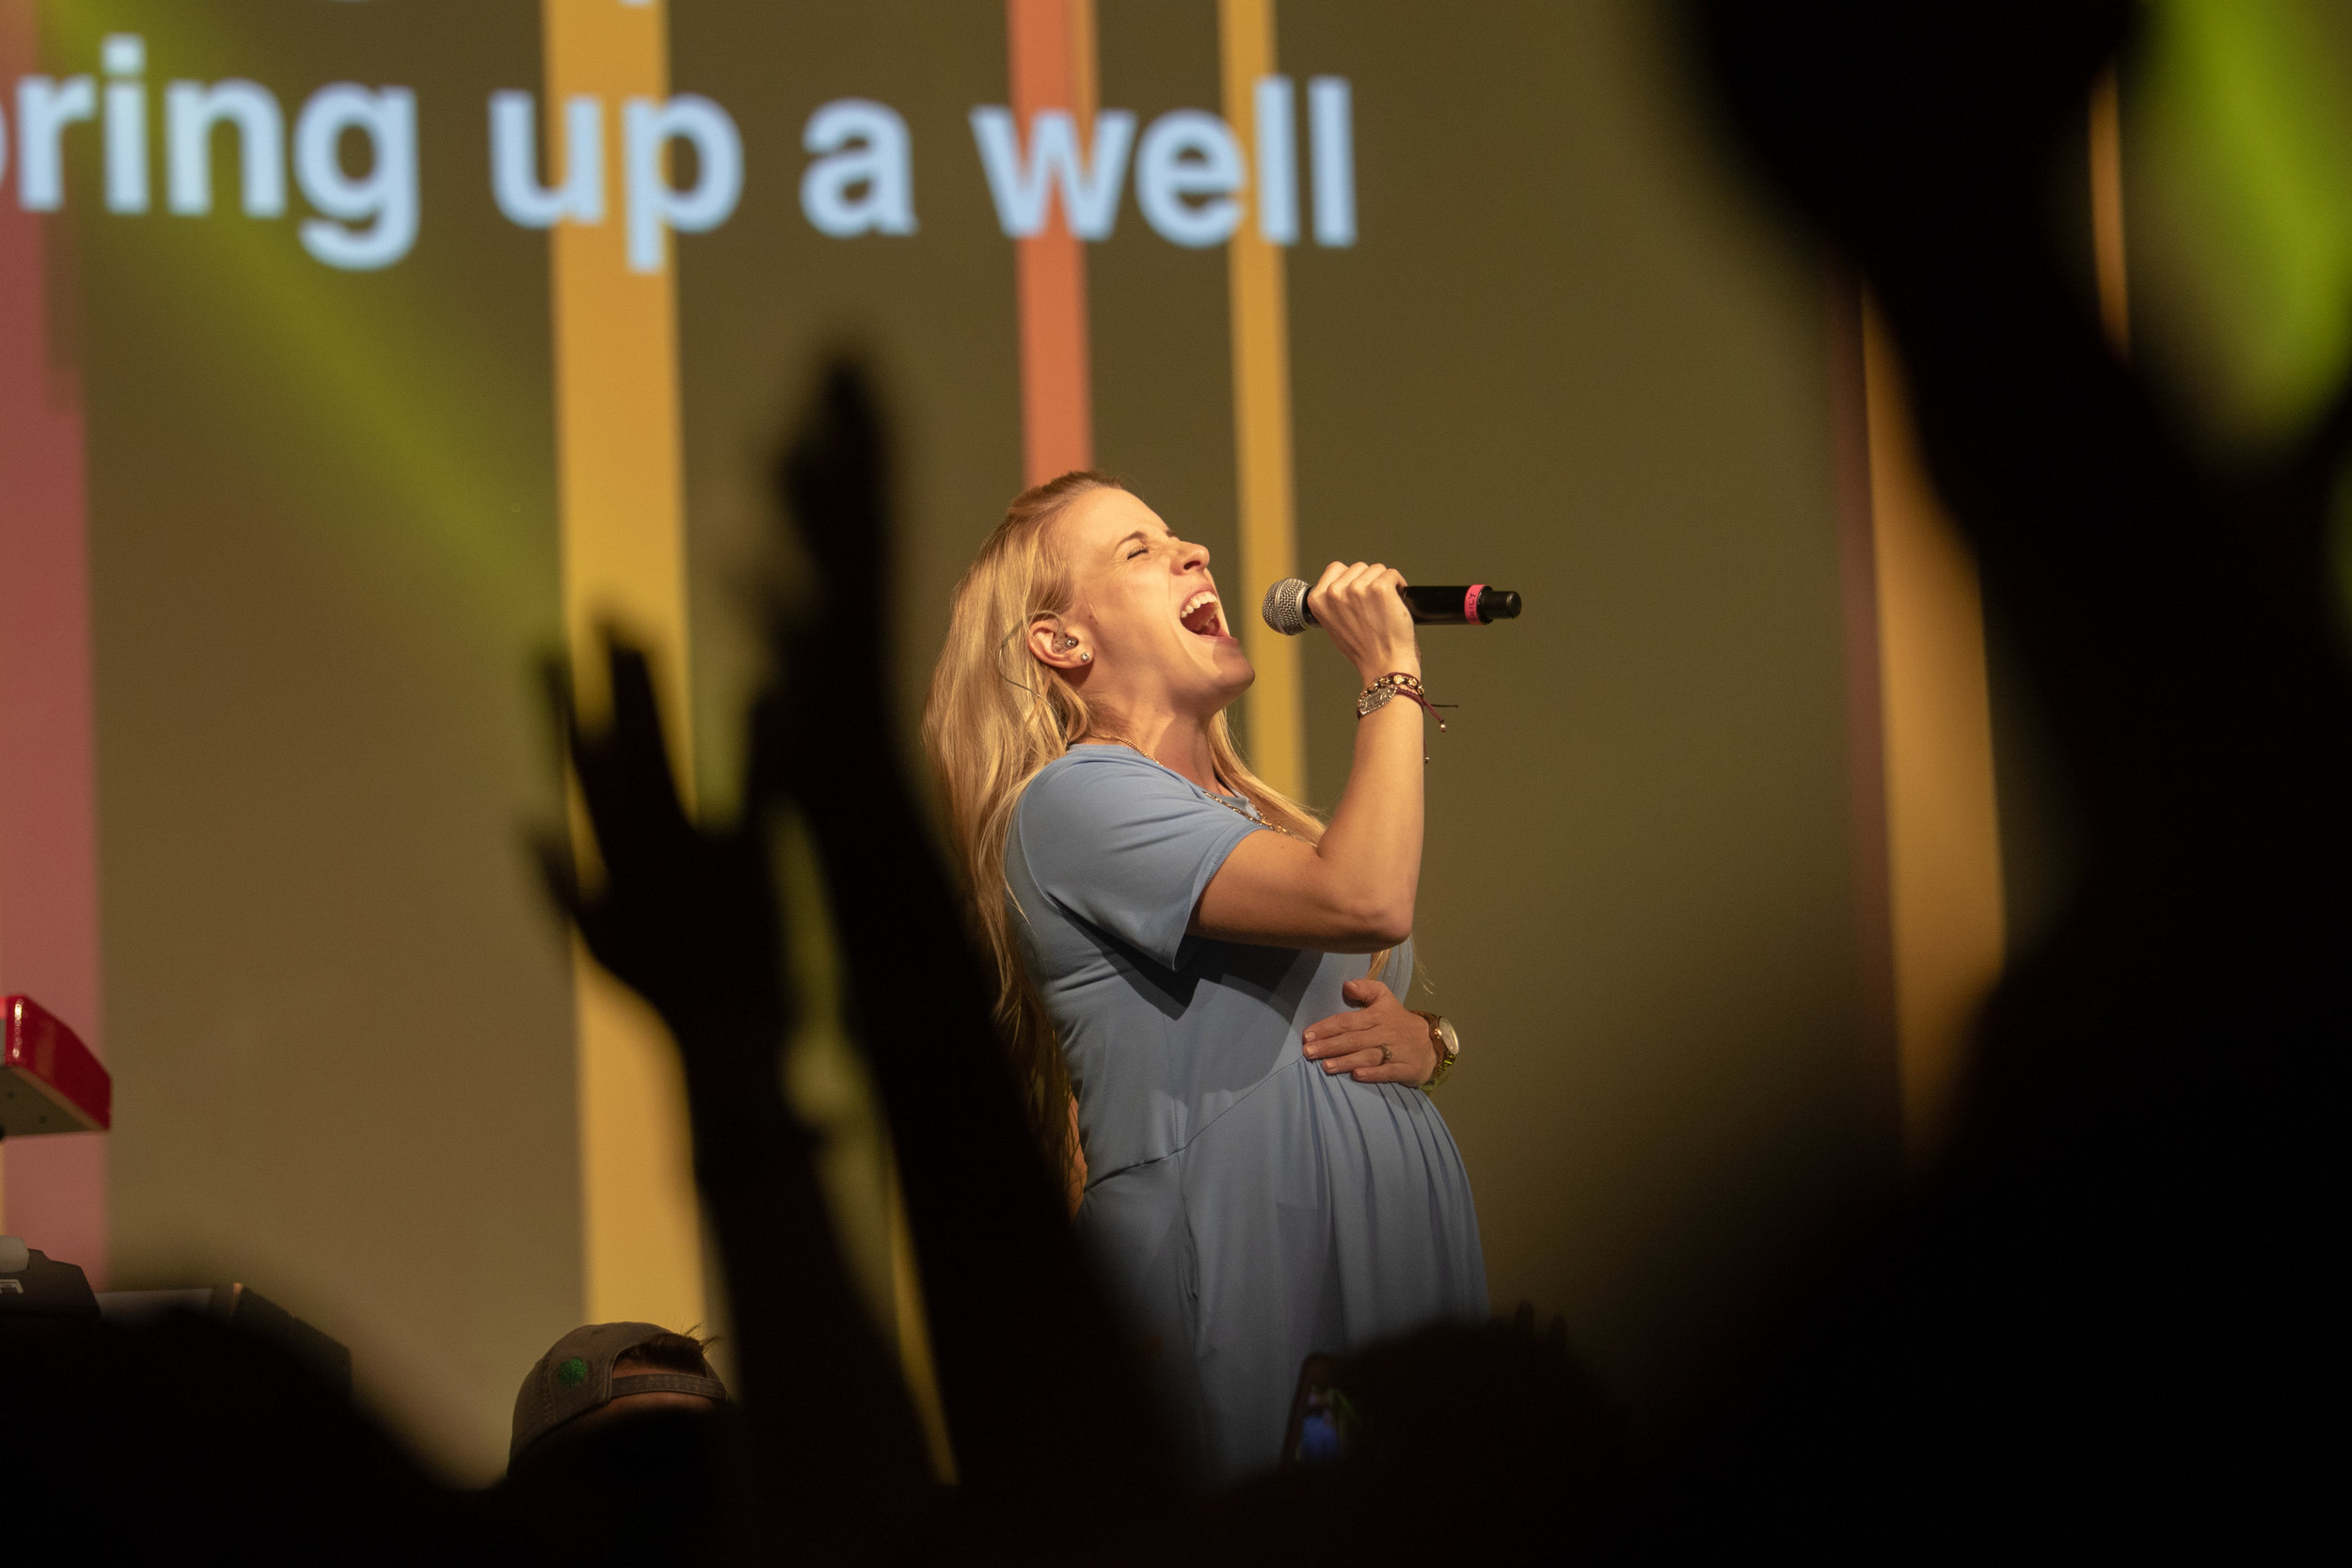 Emily Wilson performs at Steubenville Lone Star on June 23, 2018 at the Irving Convention Center.